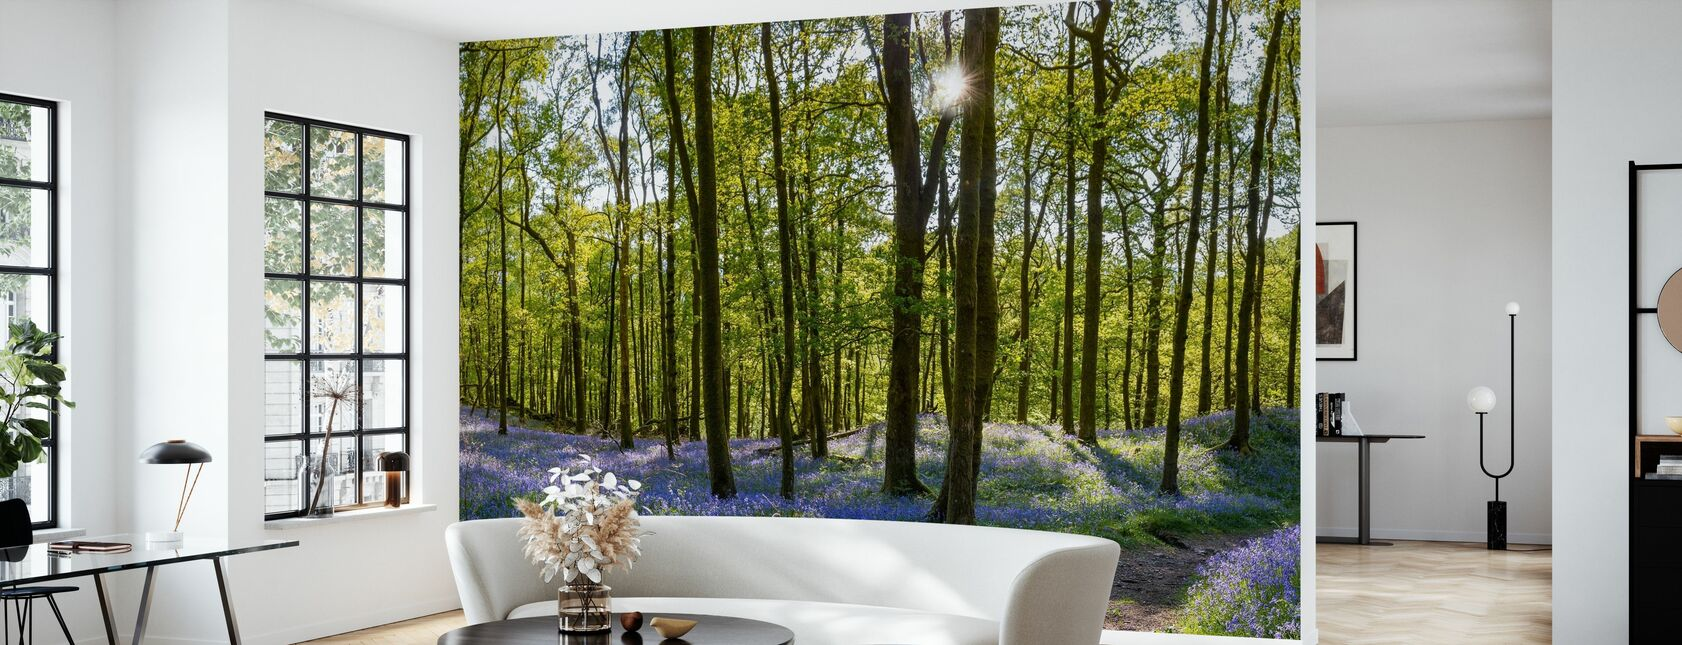 Bluebell Carpets on Woodland - Wallpaper - Living Room